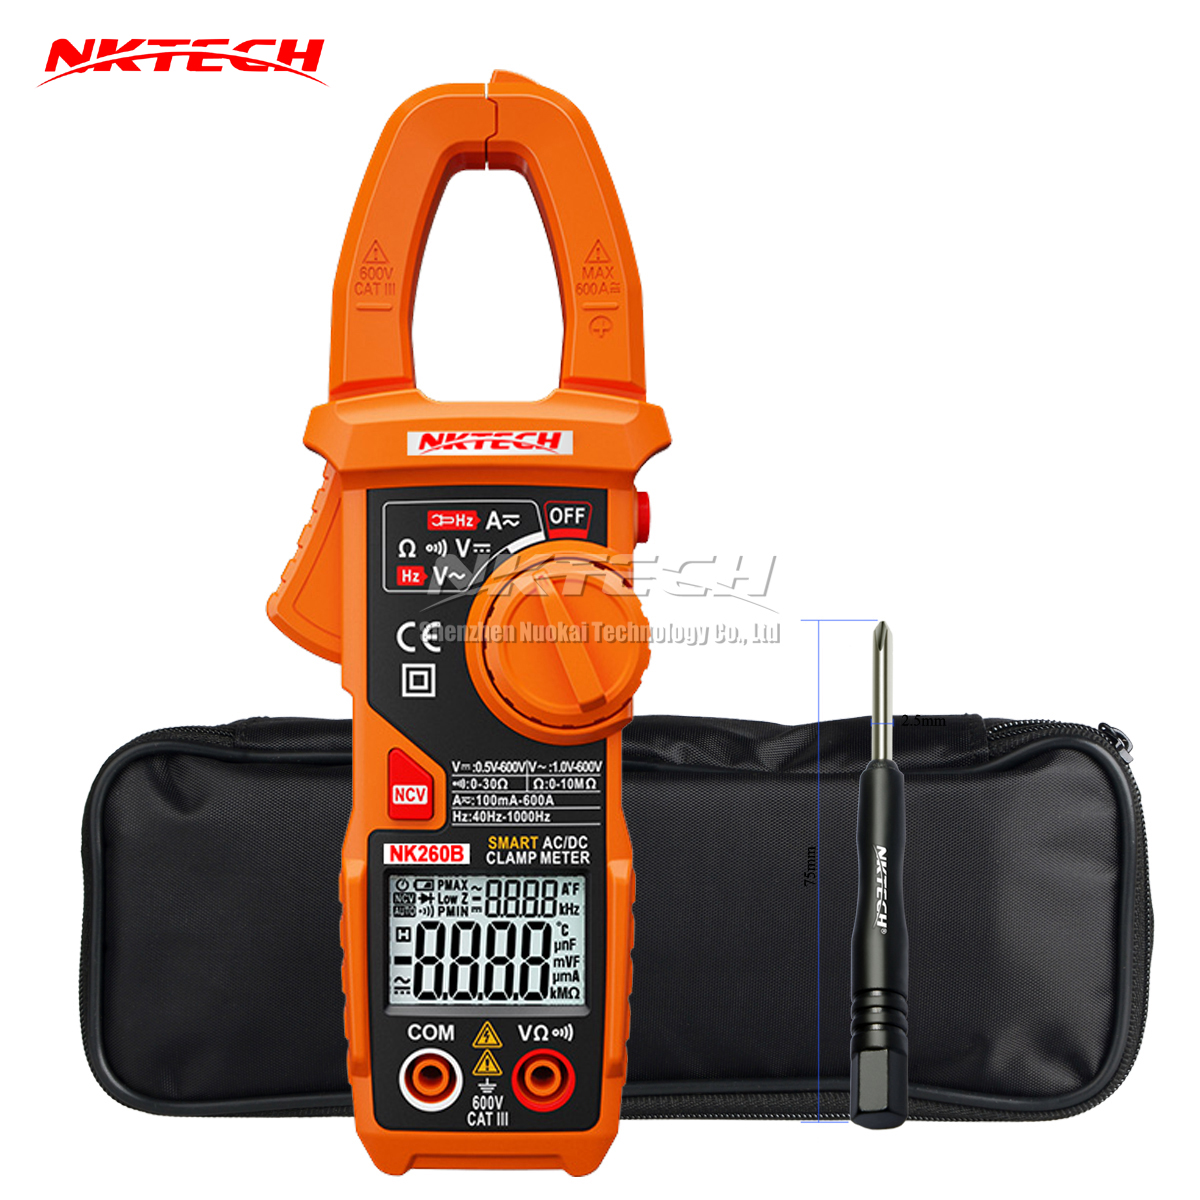 NKTECH NK260B Digital Clamp Meter Smart Auto Range AC DC Voltage Current Resistance Freq ...